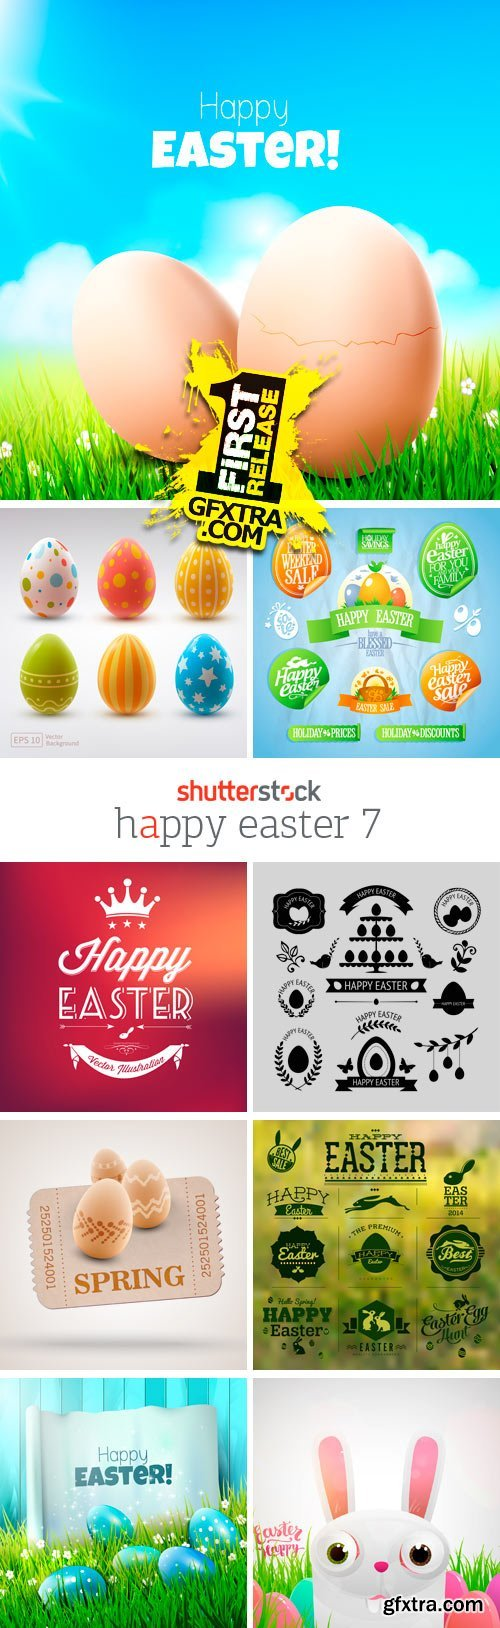 Amazing SS - Happy Easter 7, 25xEPS